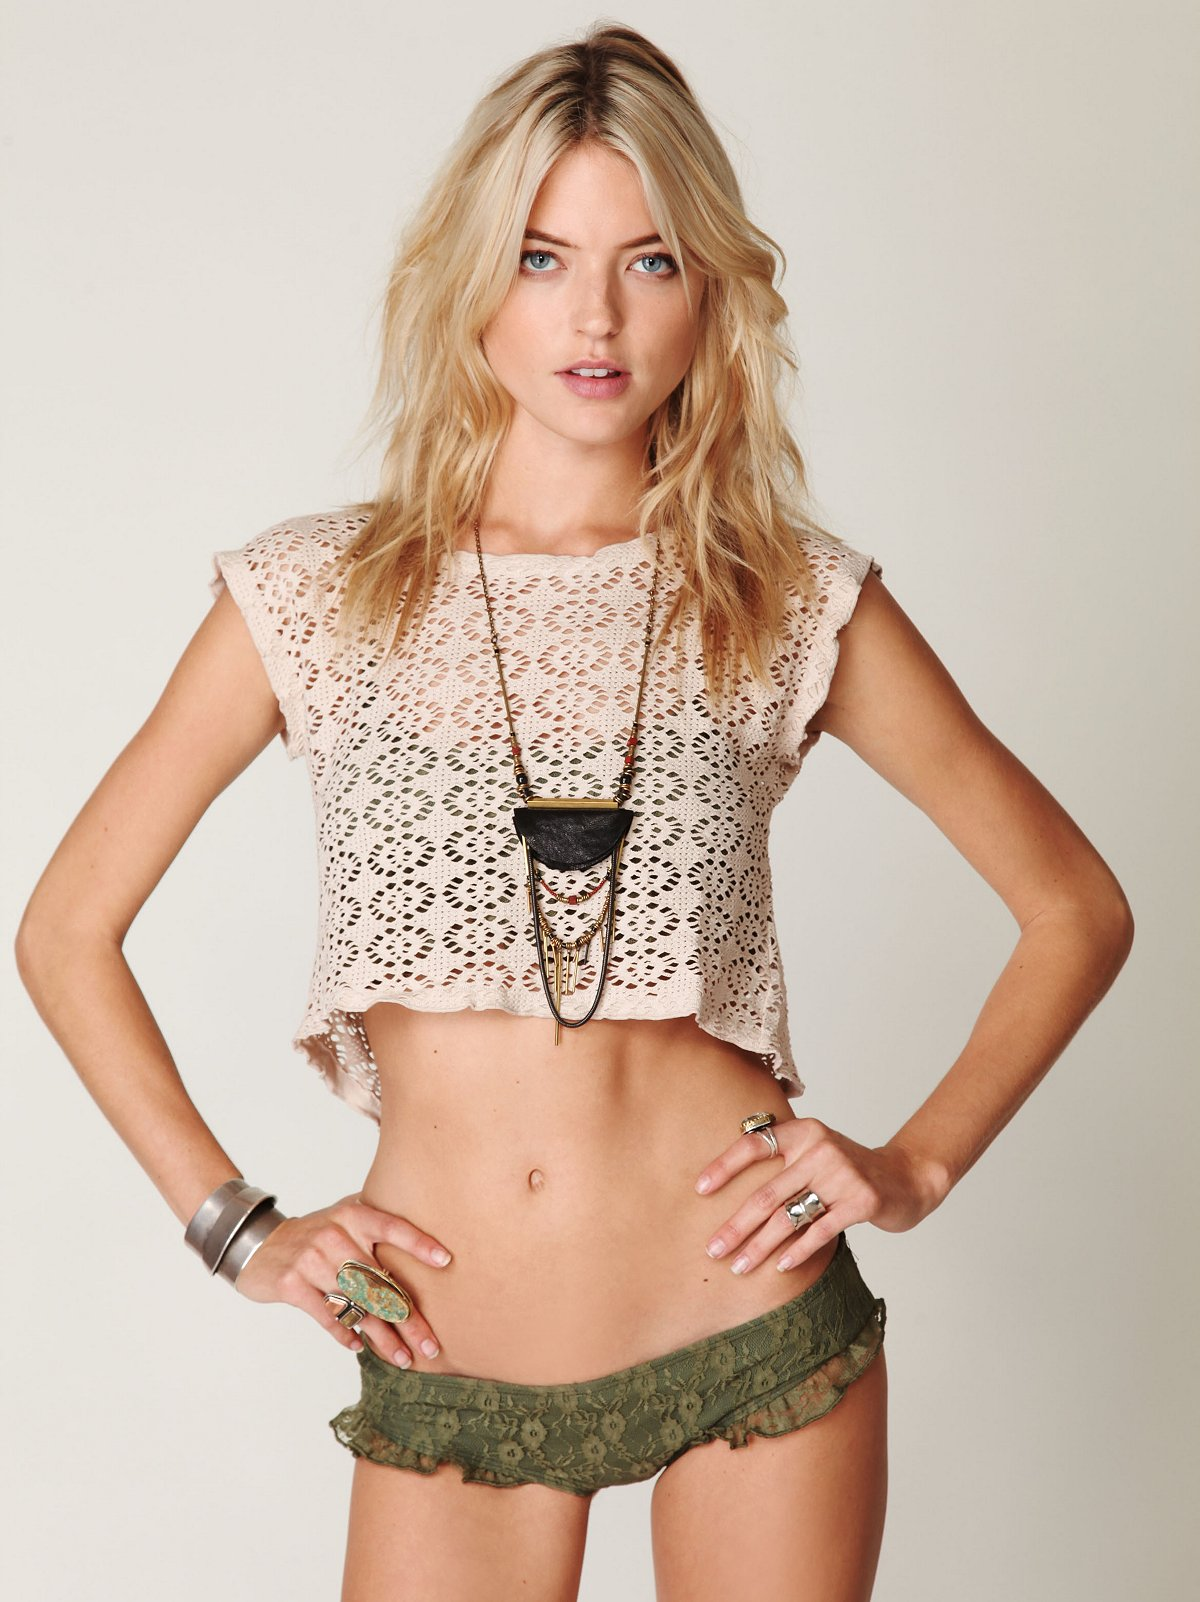 Goodie Goodie Crochet Top